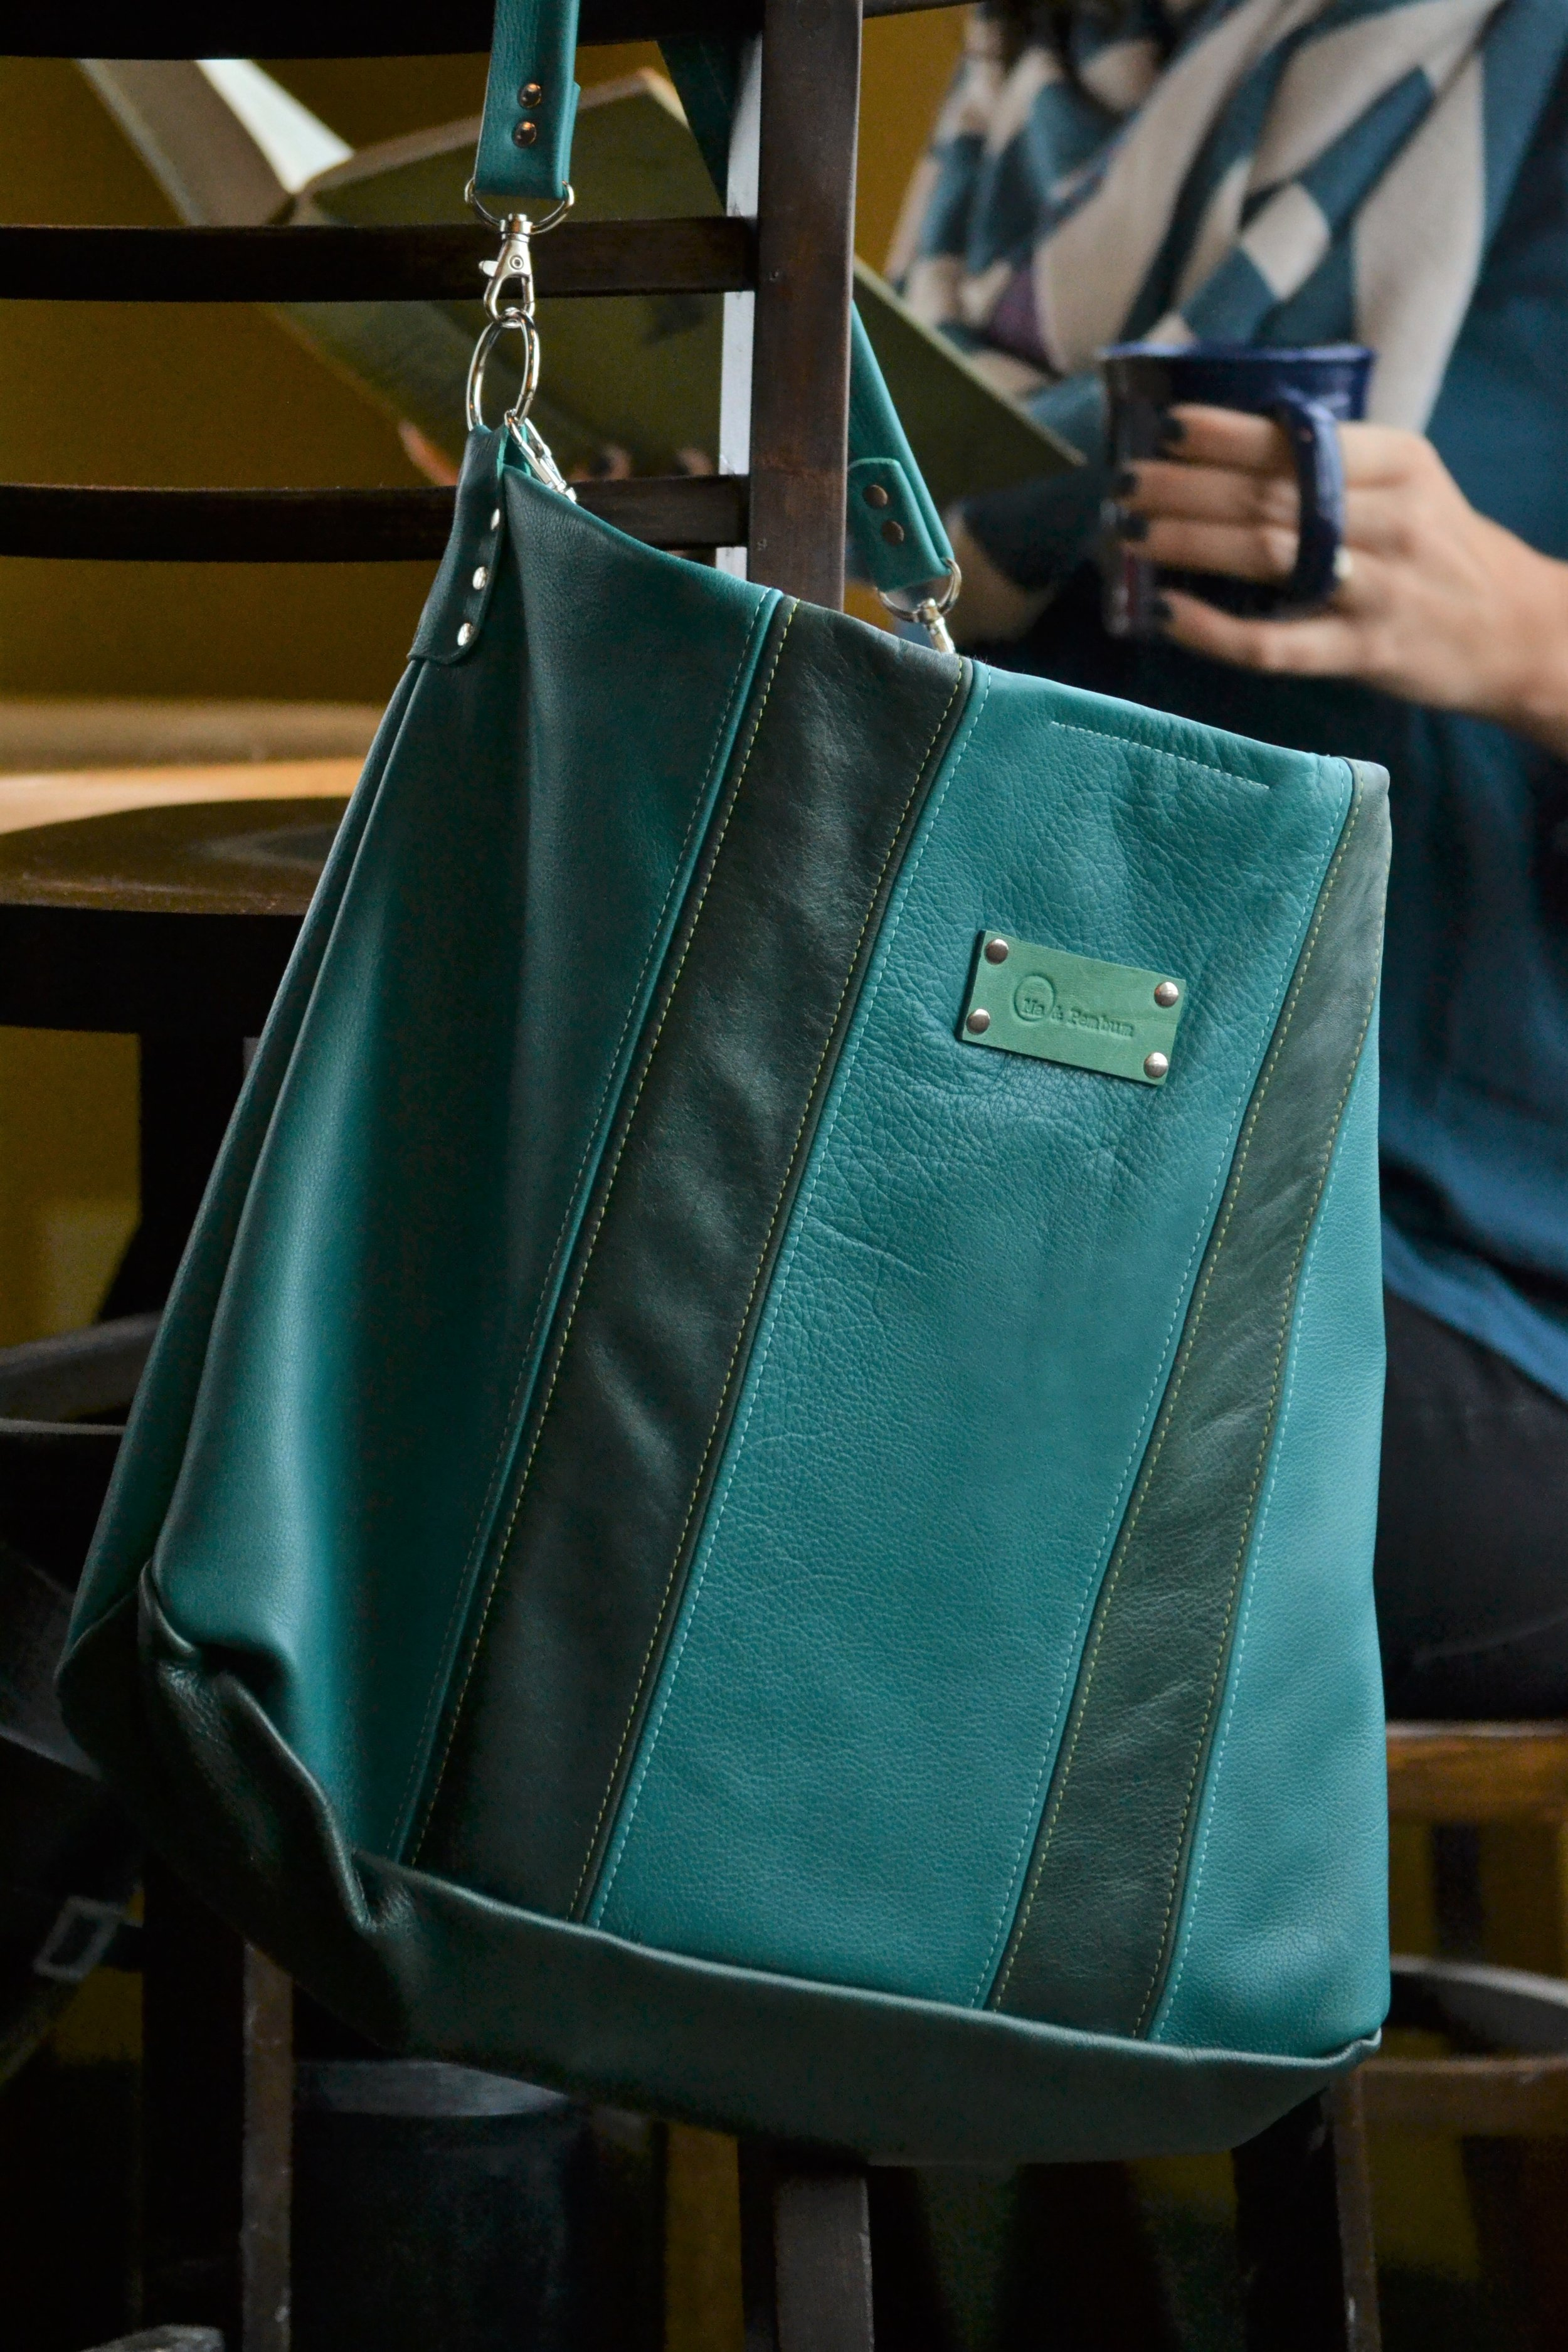 The Carryall in jade and forest